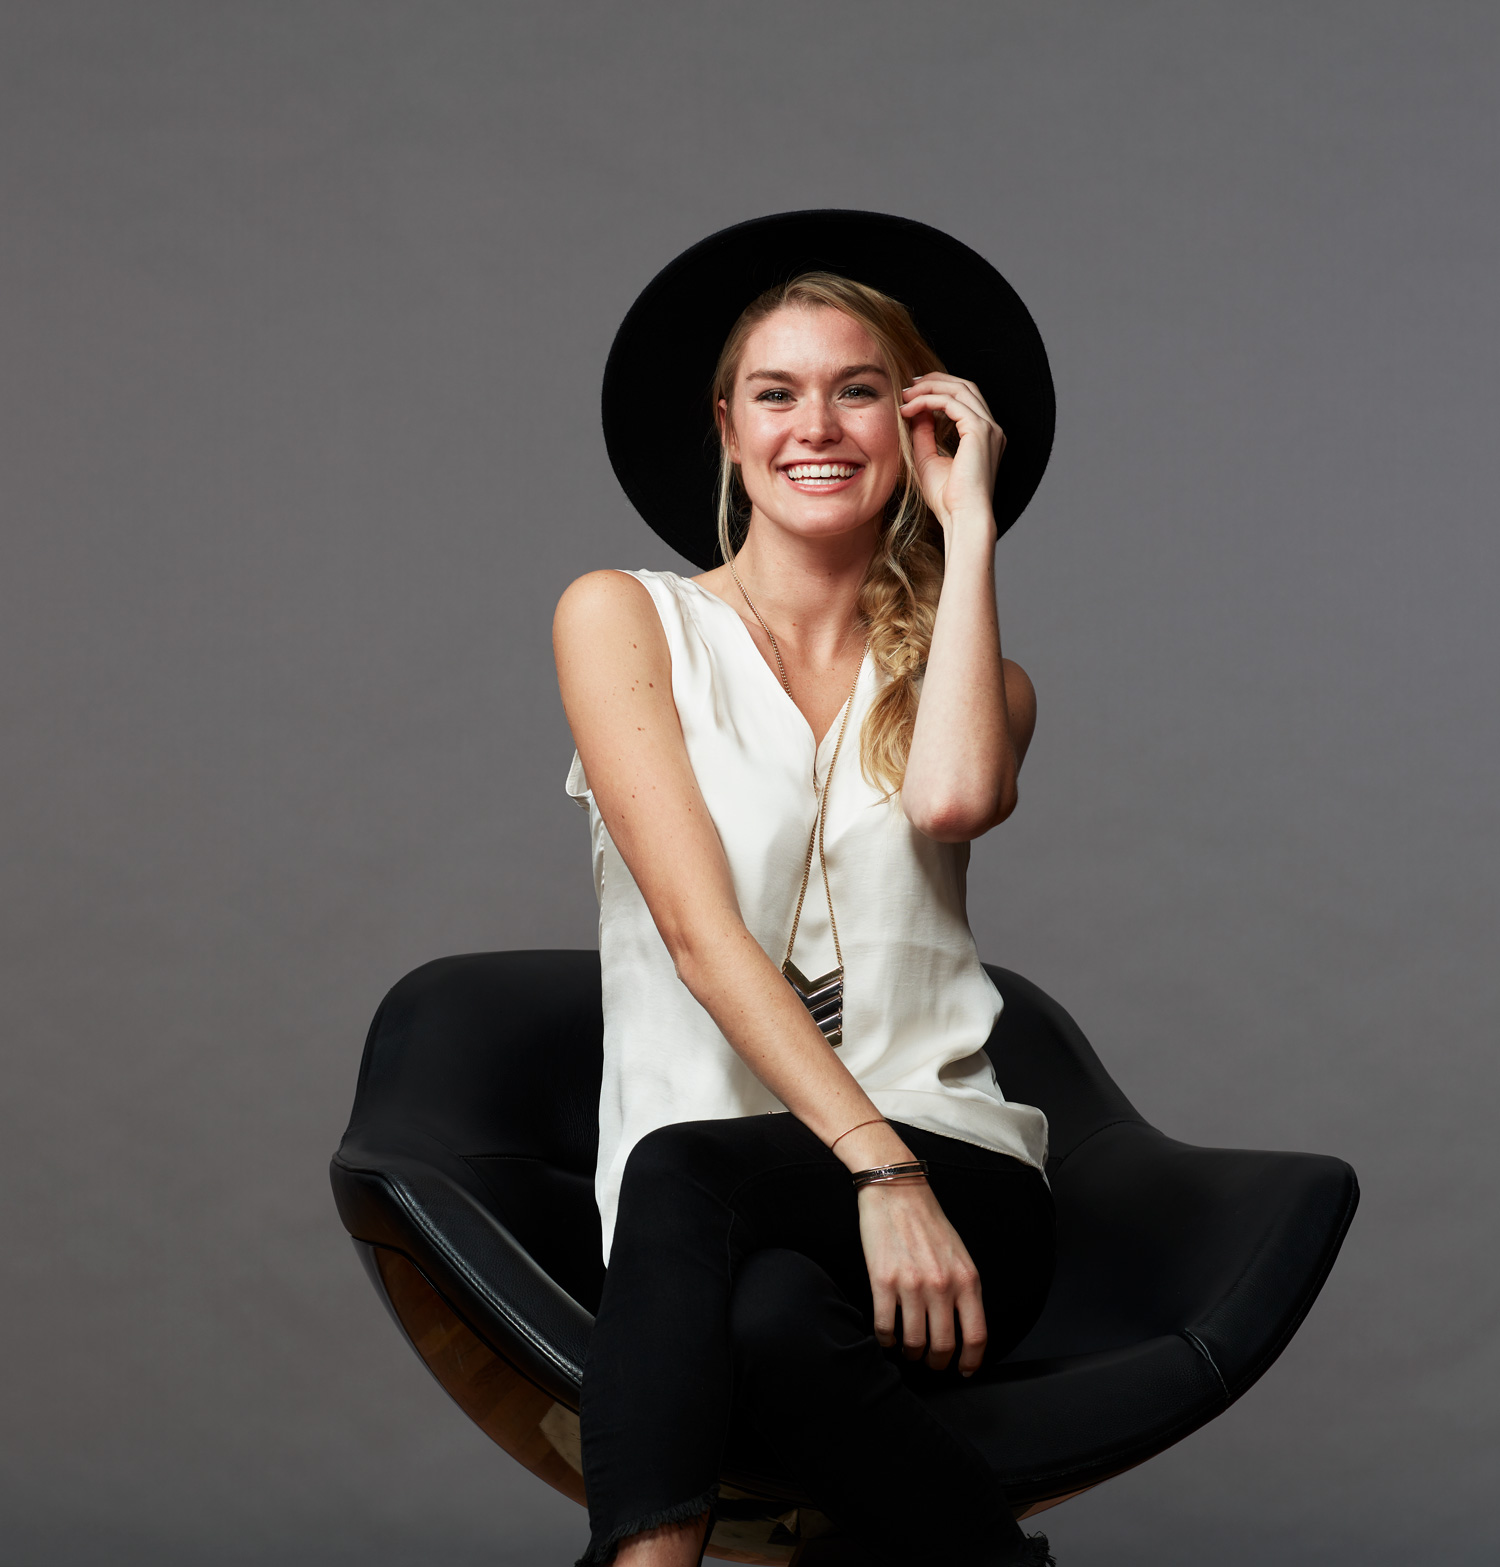 image of woman sitting in a chair in a studio smiling at the camera